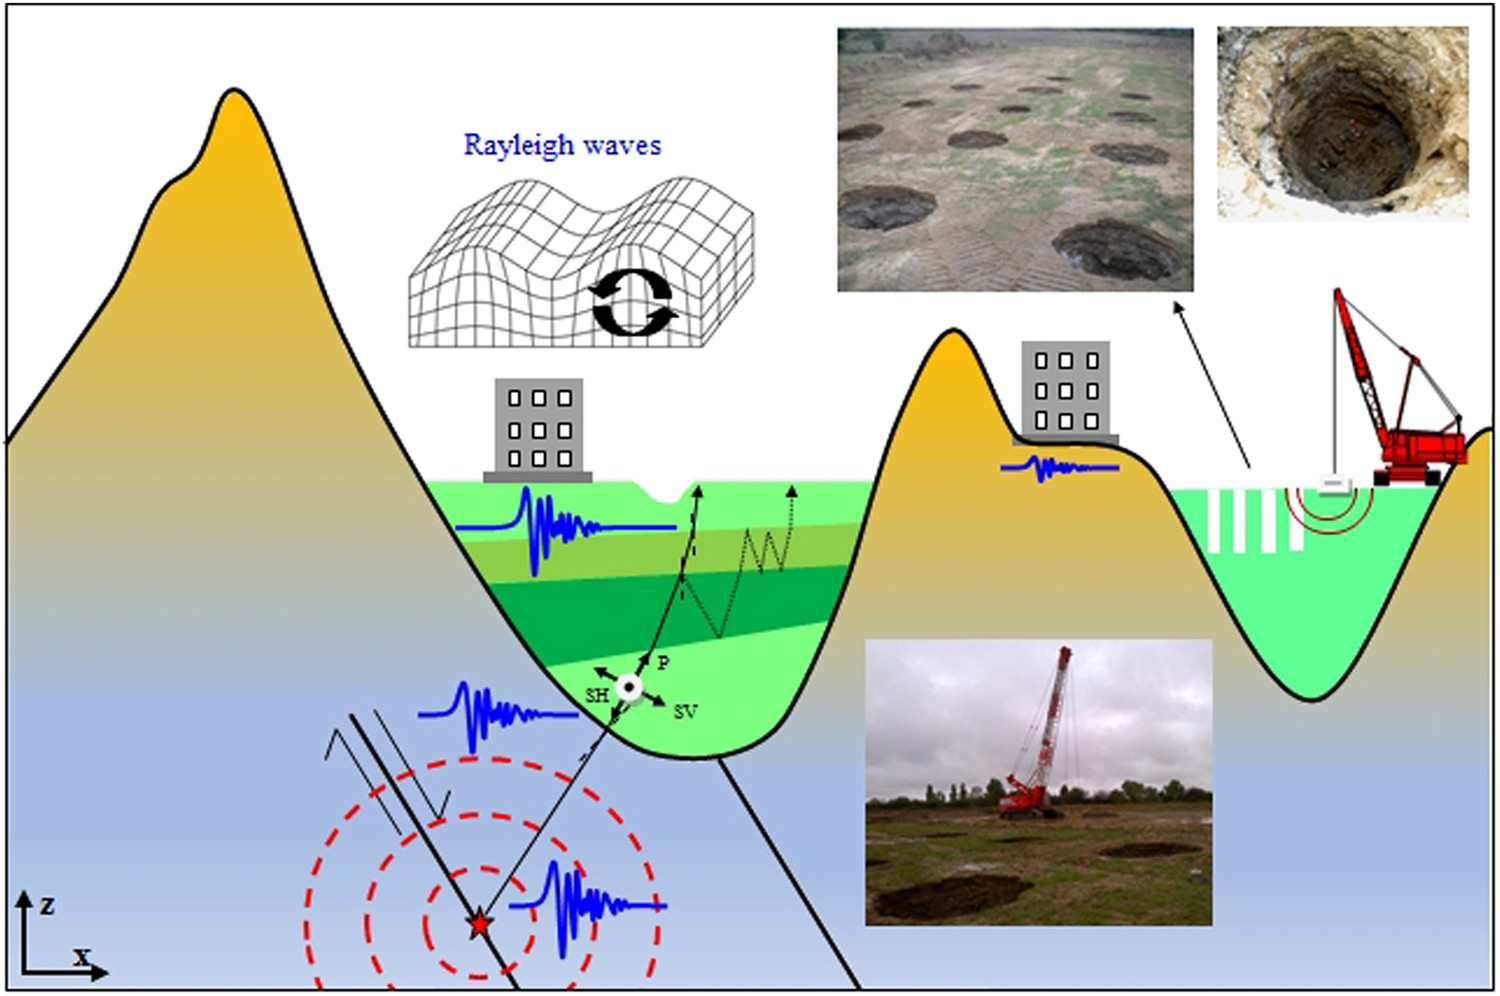 Flat Lens Effect On Seismic Waves Propagation In The Subsoil Radio Diagram Showing Flow Of Scientific Reports